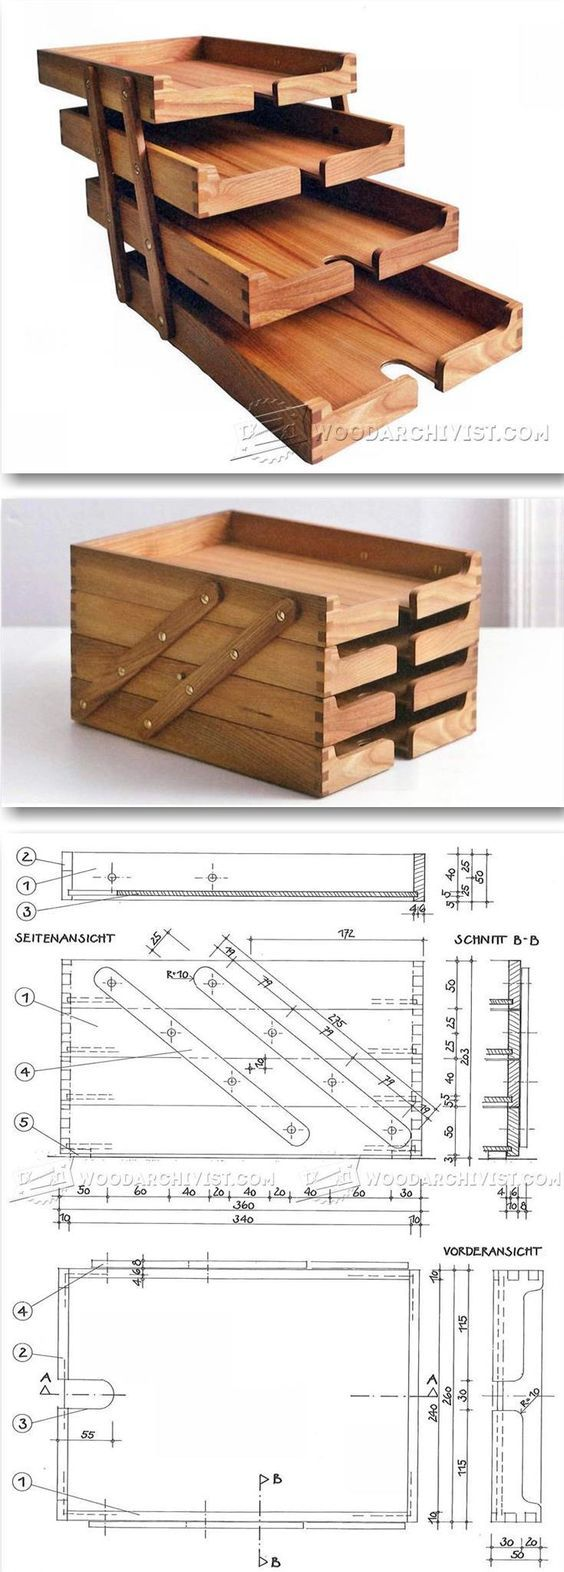 wooden desk tray plans woodworking plans and projects woodarchivist com [ 564 x 1572 Pixel ]